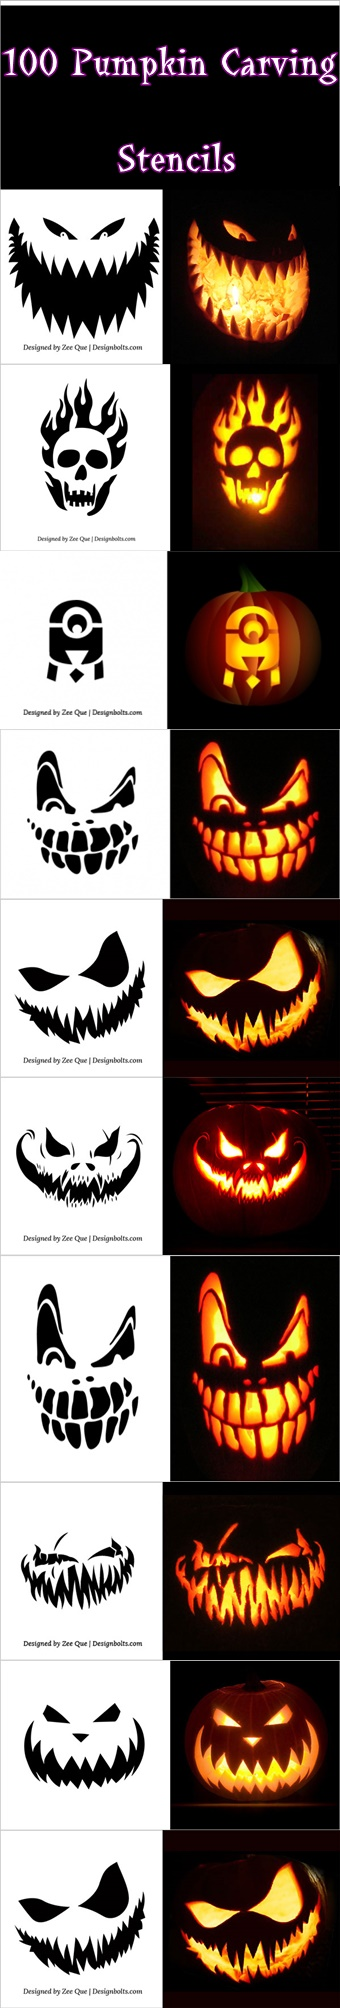 100 Pumpkin Carving Stencils, pumpkin carving stencils, pumpkin ...